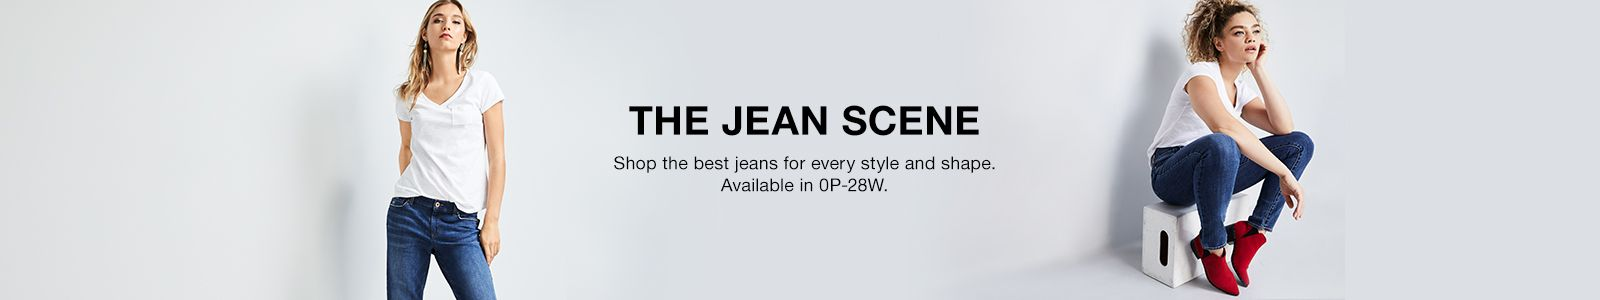 The Jean Scene, Shop the best jeans for every style and shape, Available in 0P-28W